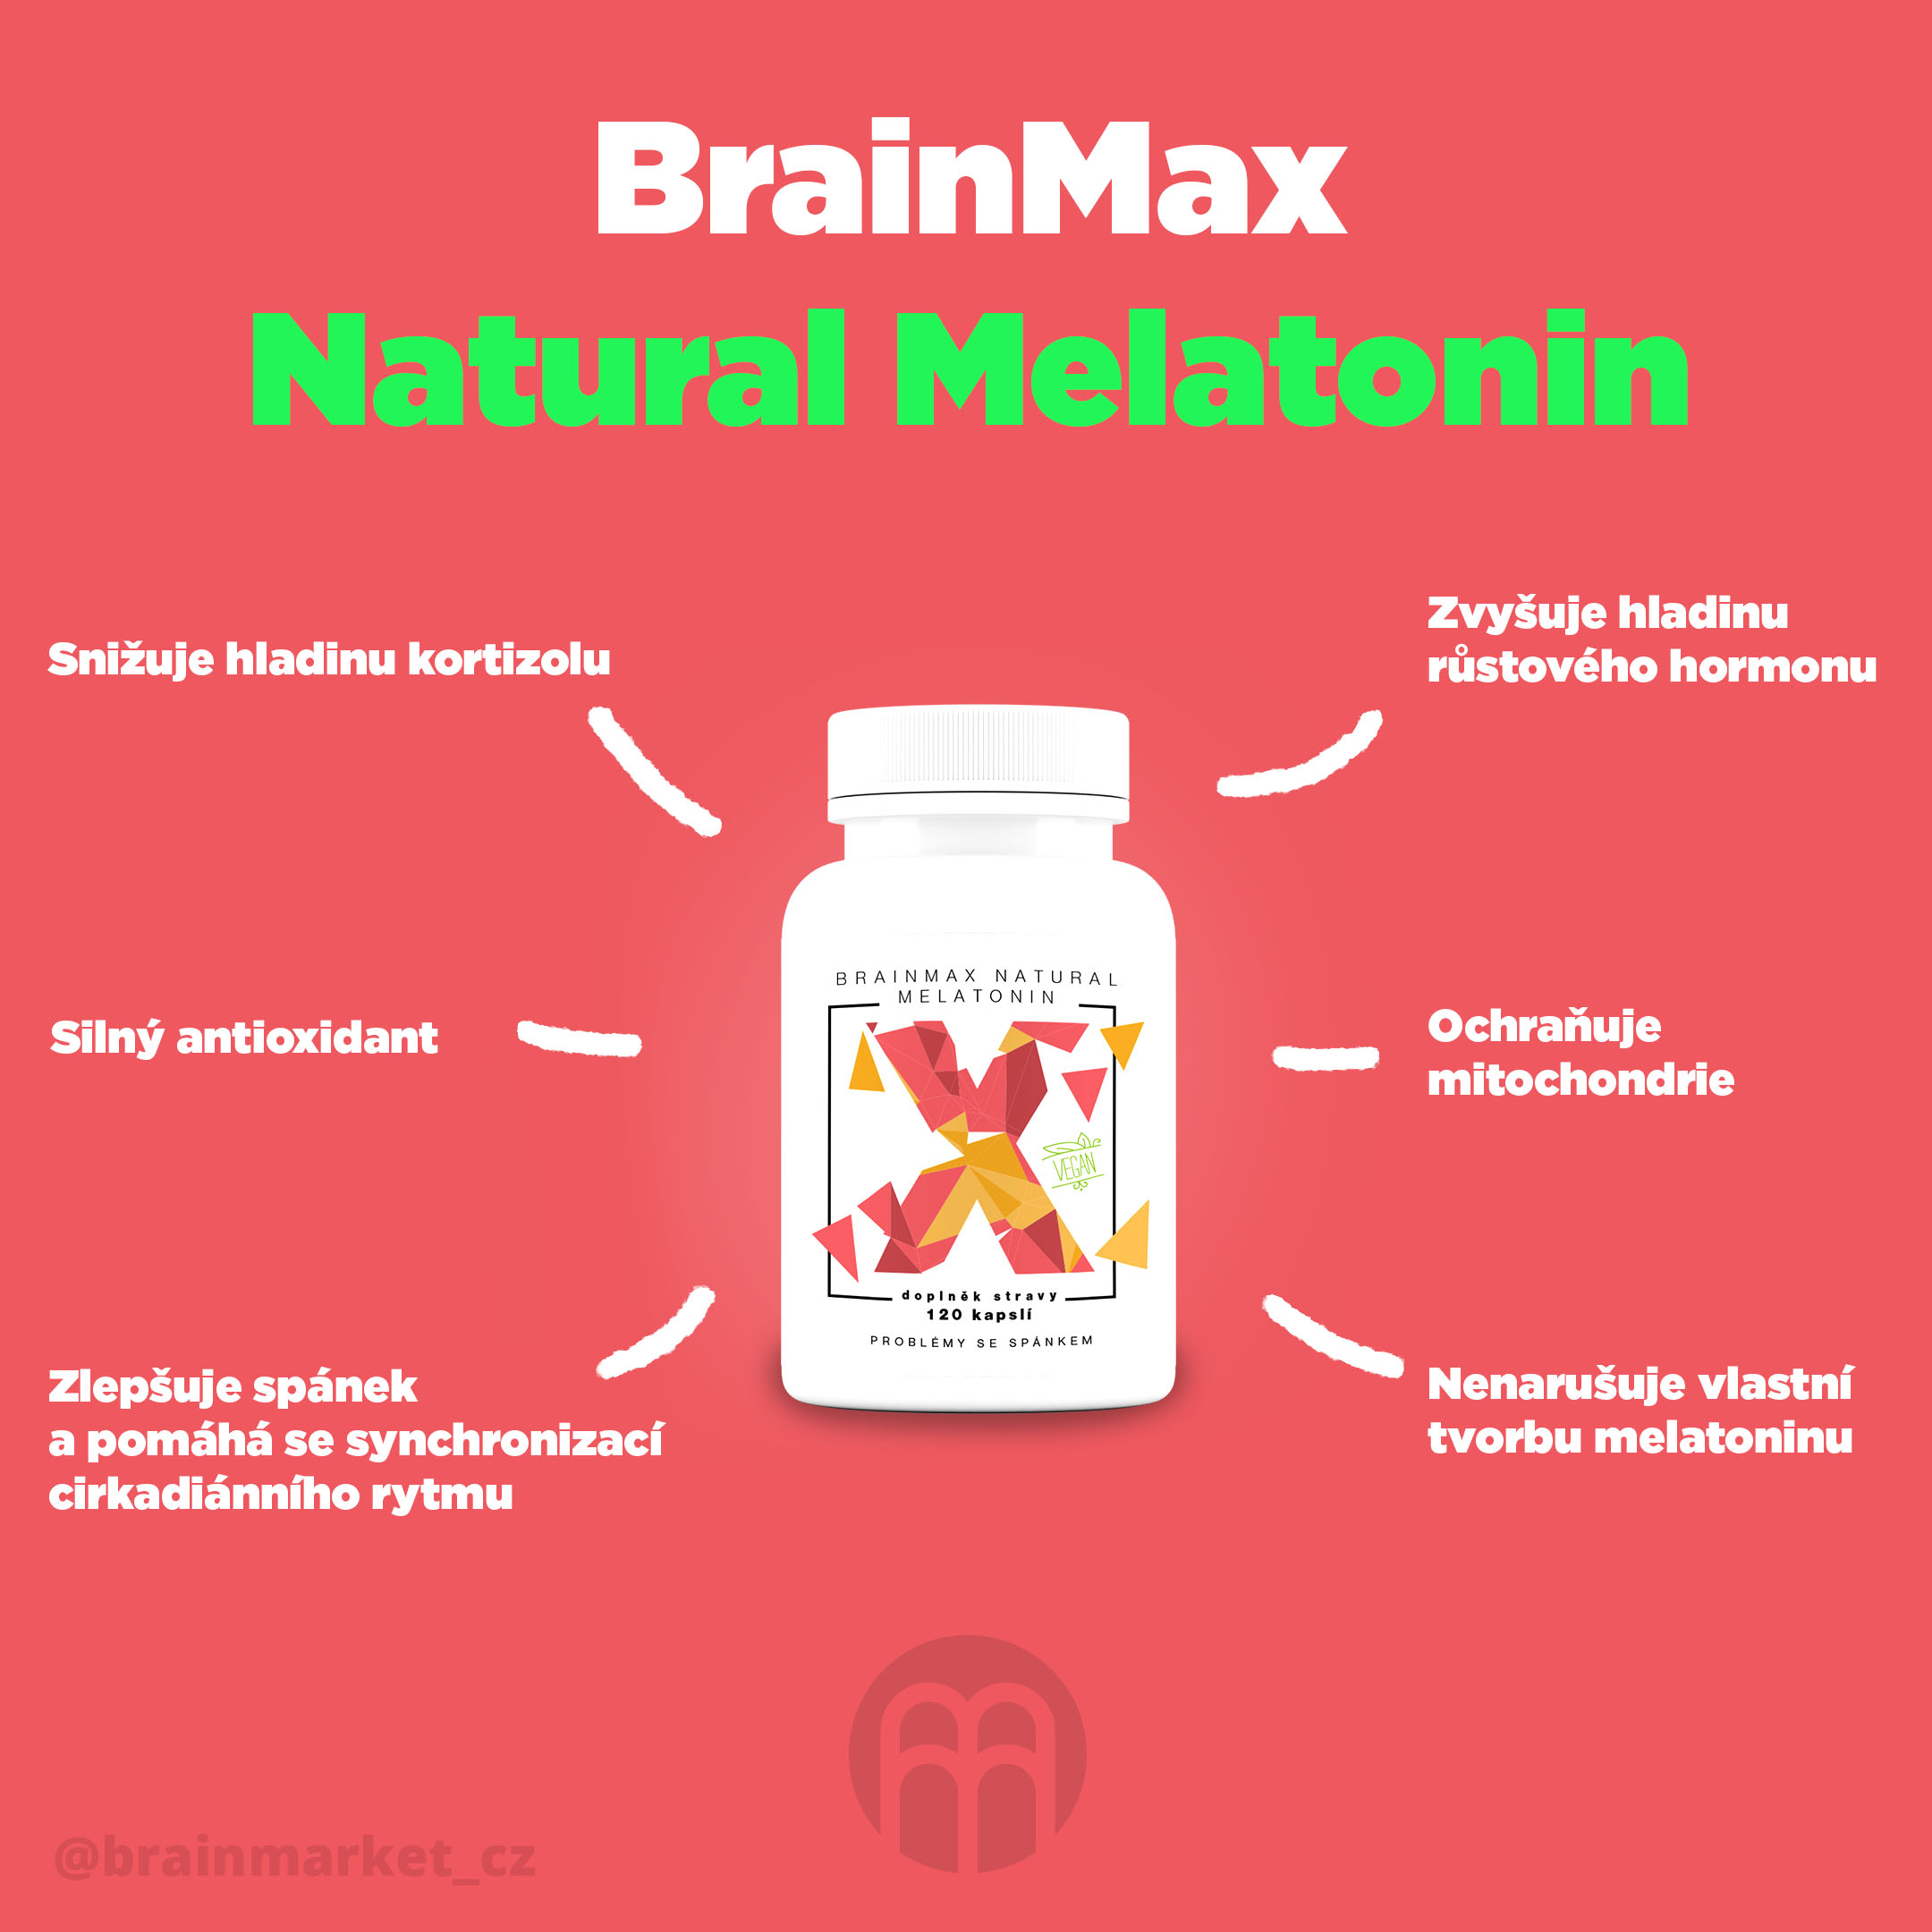 brainmax_natural_melatonin